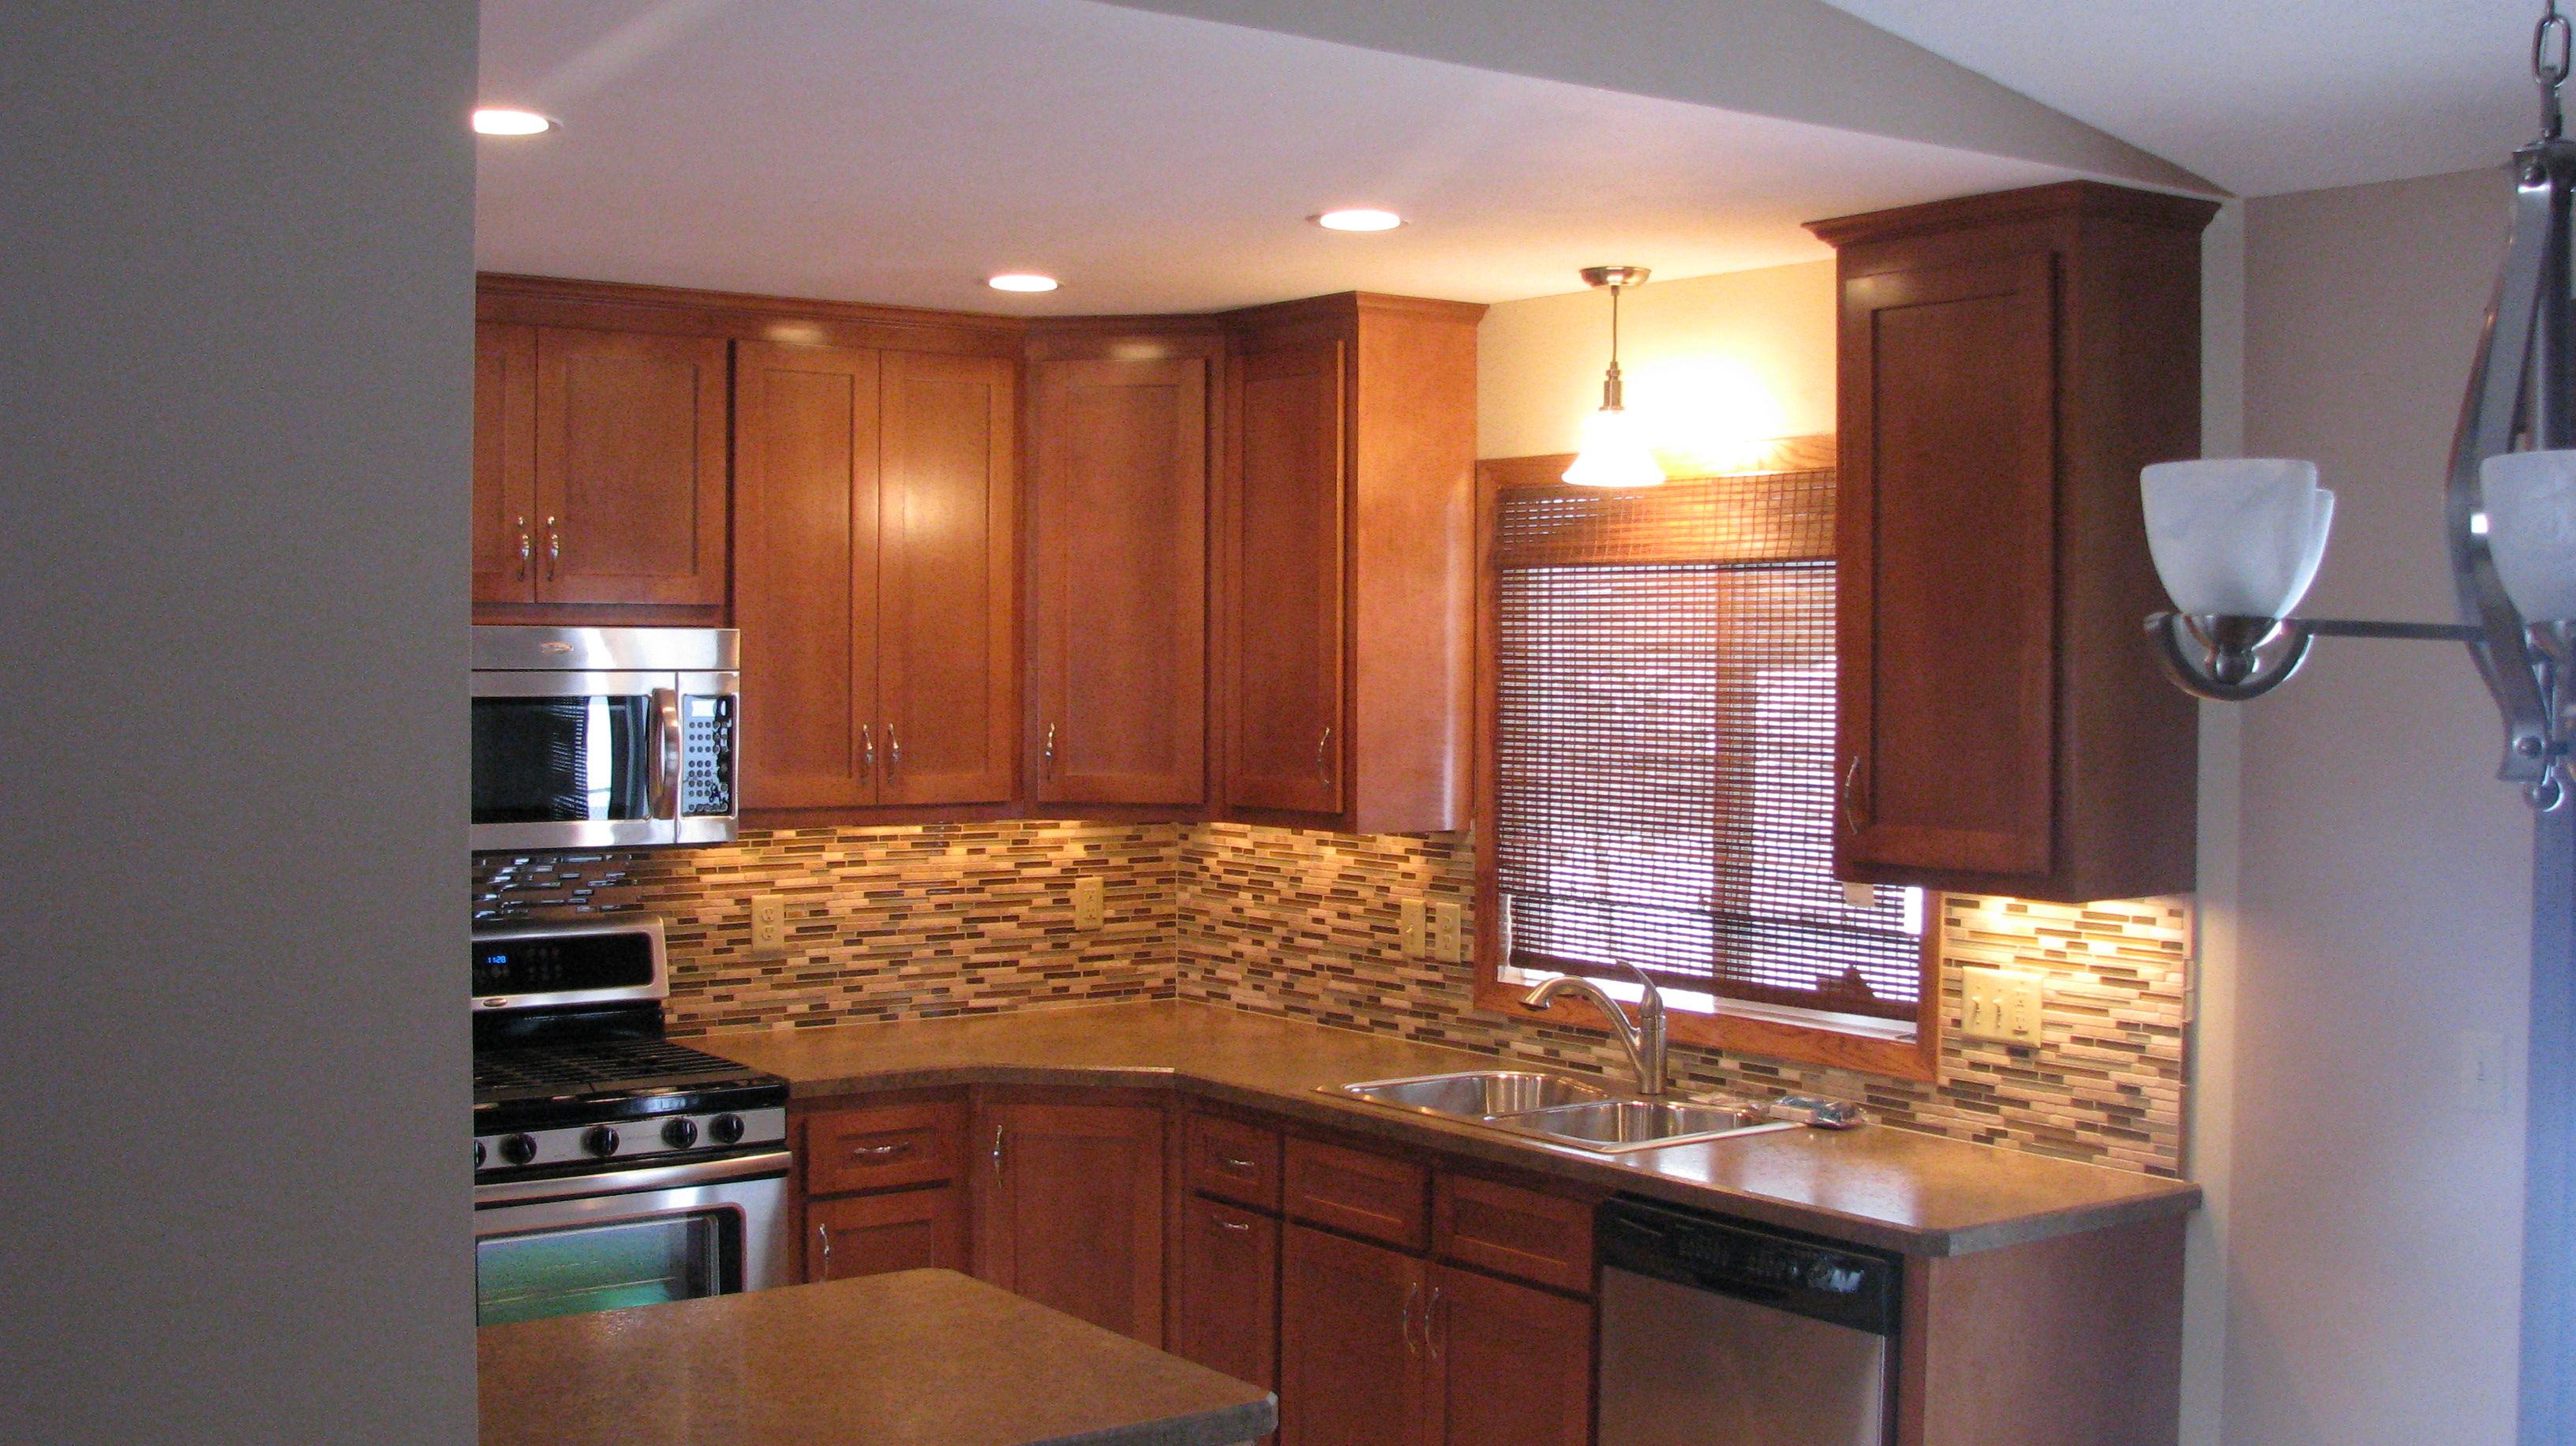 Split entry kitchen remodel remodeling kitchen for Kitchen remodel ideas pictures